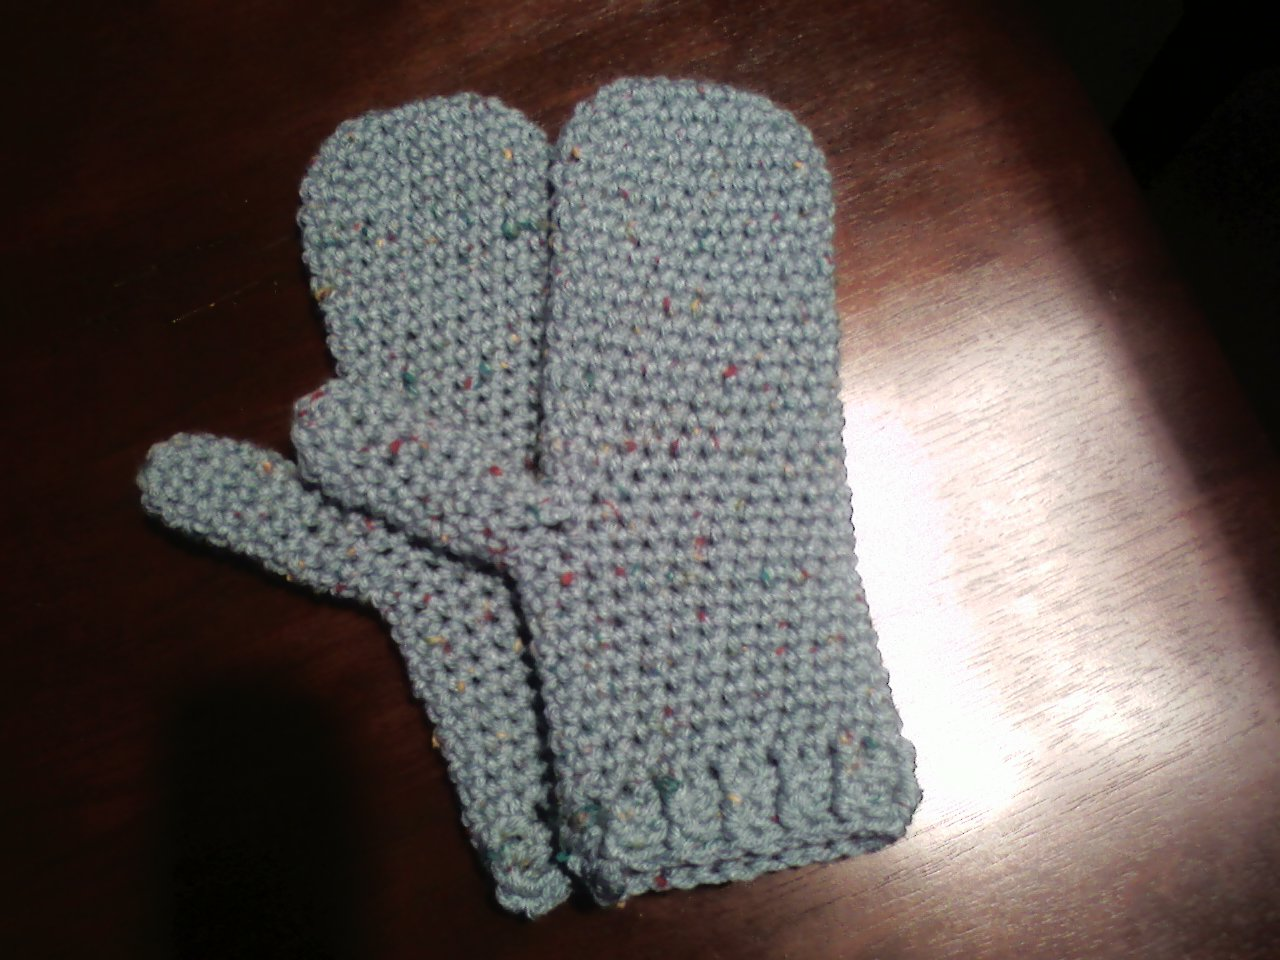 Crochet Patterns Mittens : ... the best parts from each pattern i liked and this pattern was born